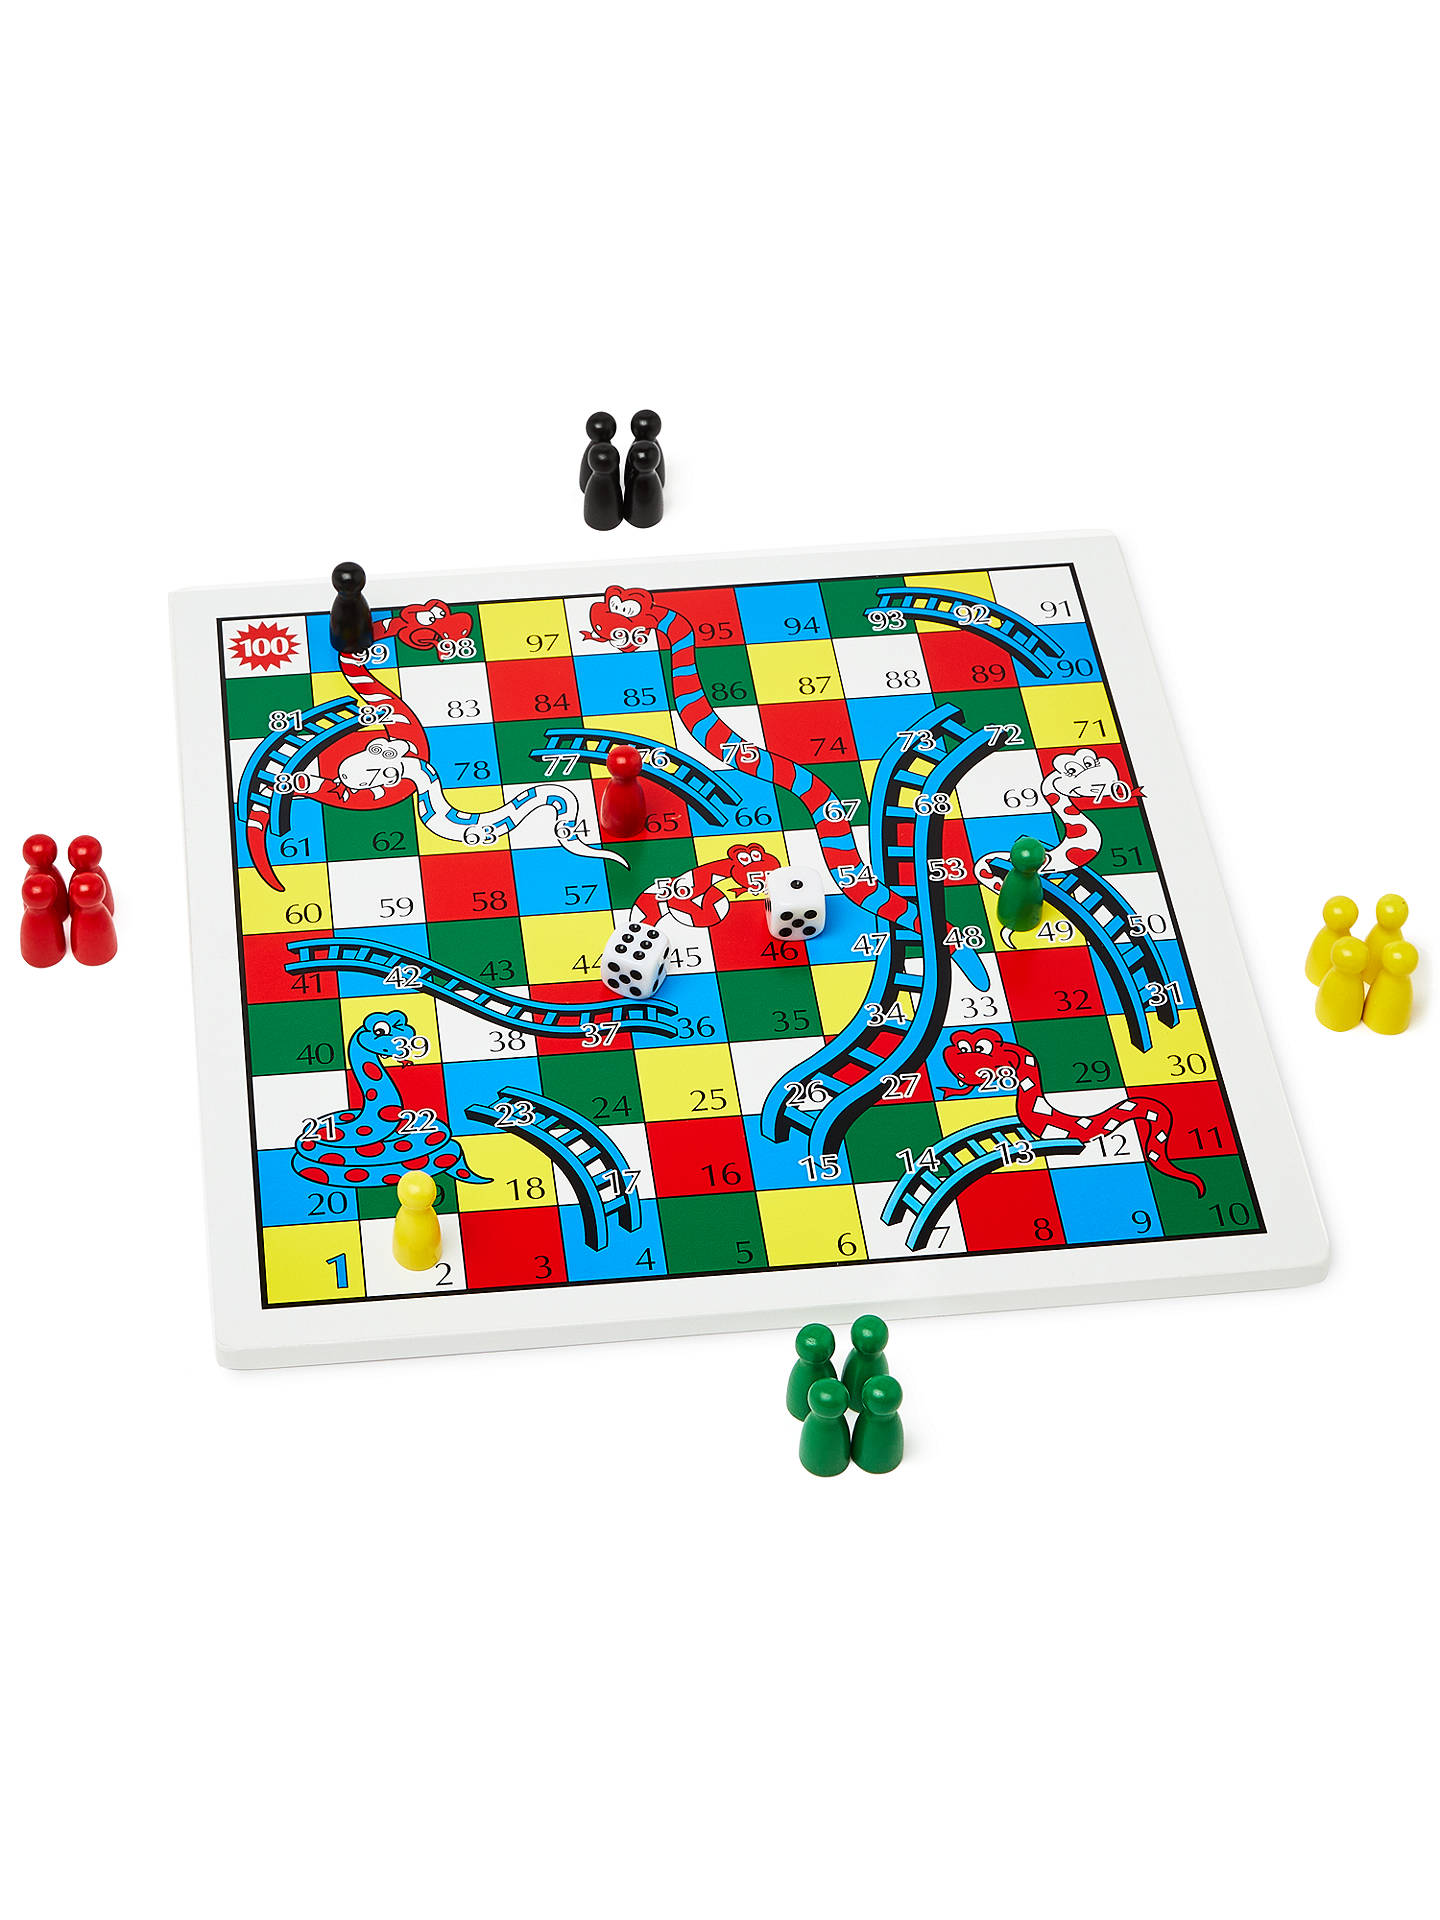 dc9eb364b519 ... Buy John Lewis & Partners Snakes and Ladders and Ludo Game Online at  johnlewis.com